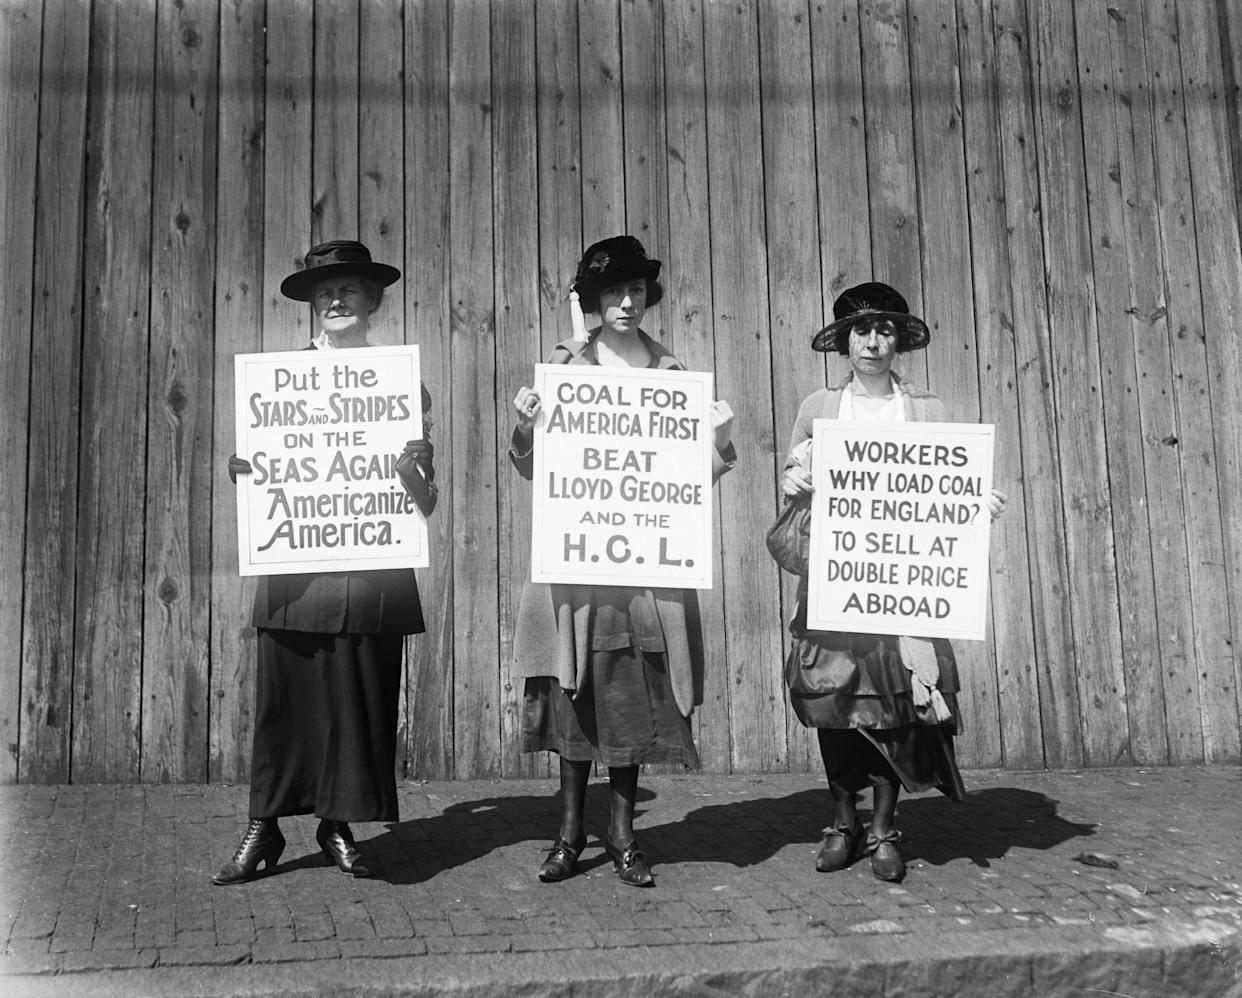 Boston women pickets are centering their drive to prevent the export of coal to that England on Sep. 22, 1920. Three of the women pickets are shown patrolling the waterfront in East Boston. The picketing is designed, the leaders said, to thwart the effort of Lloyd George to import 150,000,000 tons of coal from America to England thus breaking the strike of British Coal Miners.